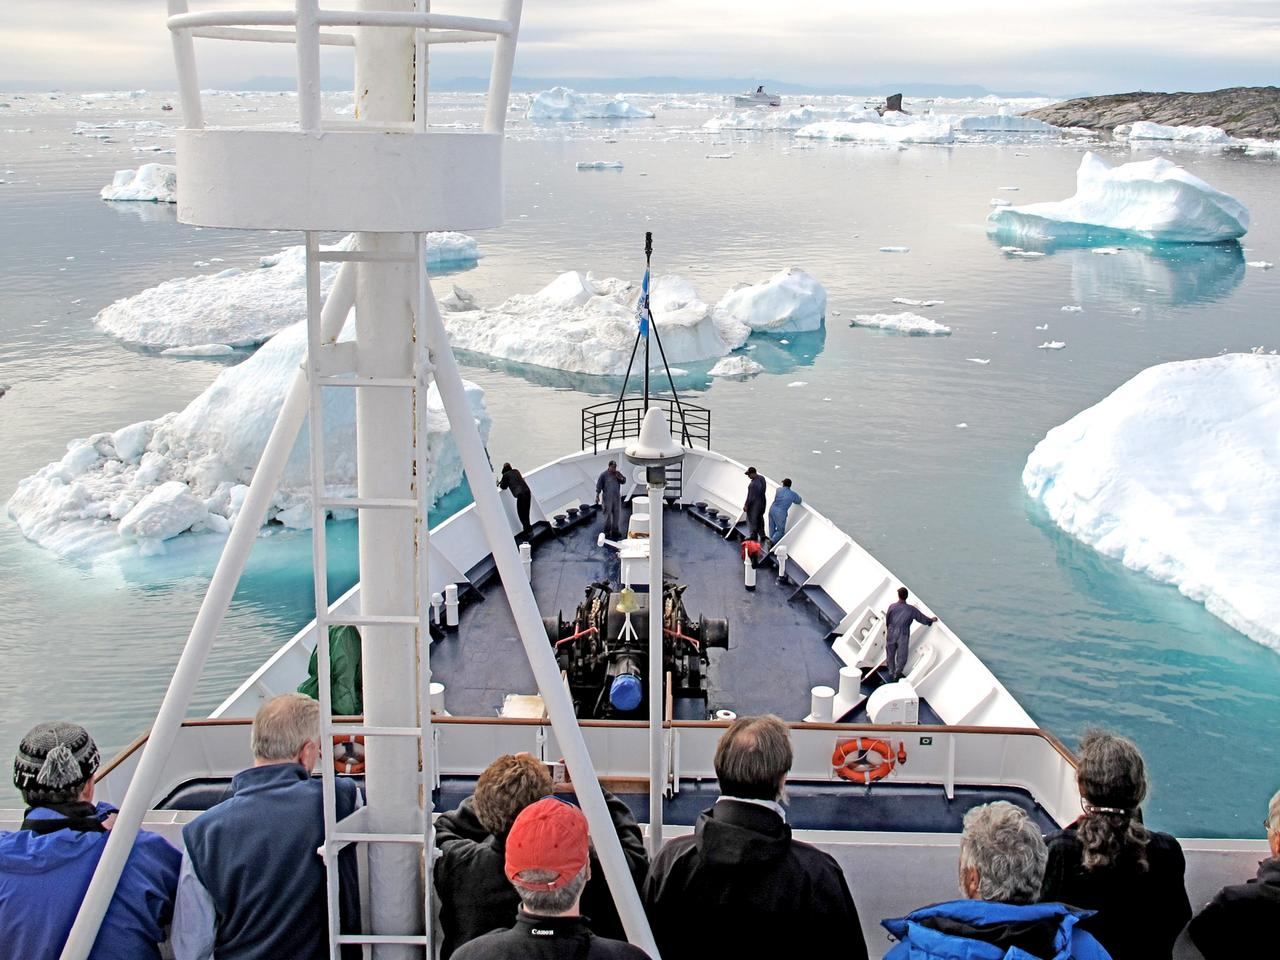 Supplied Editorial Fwd: Brad - cruise deals - Northwest Passage - save US$7000 per couple and US$11,000 for solo travellers -press release